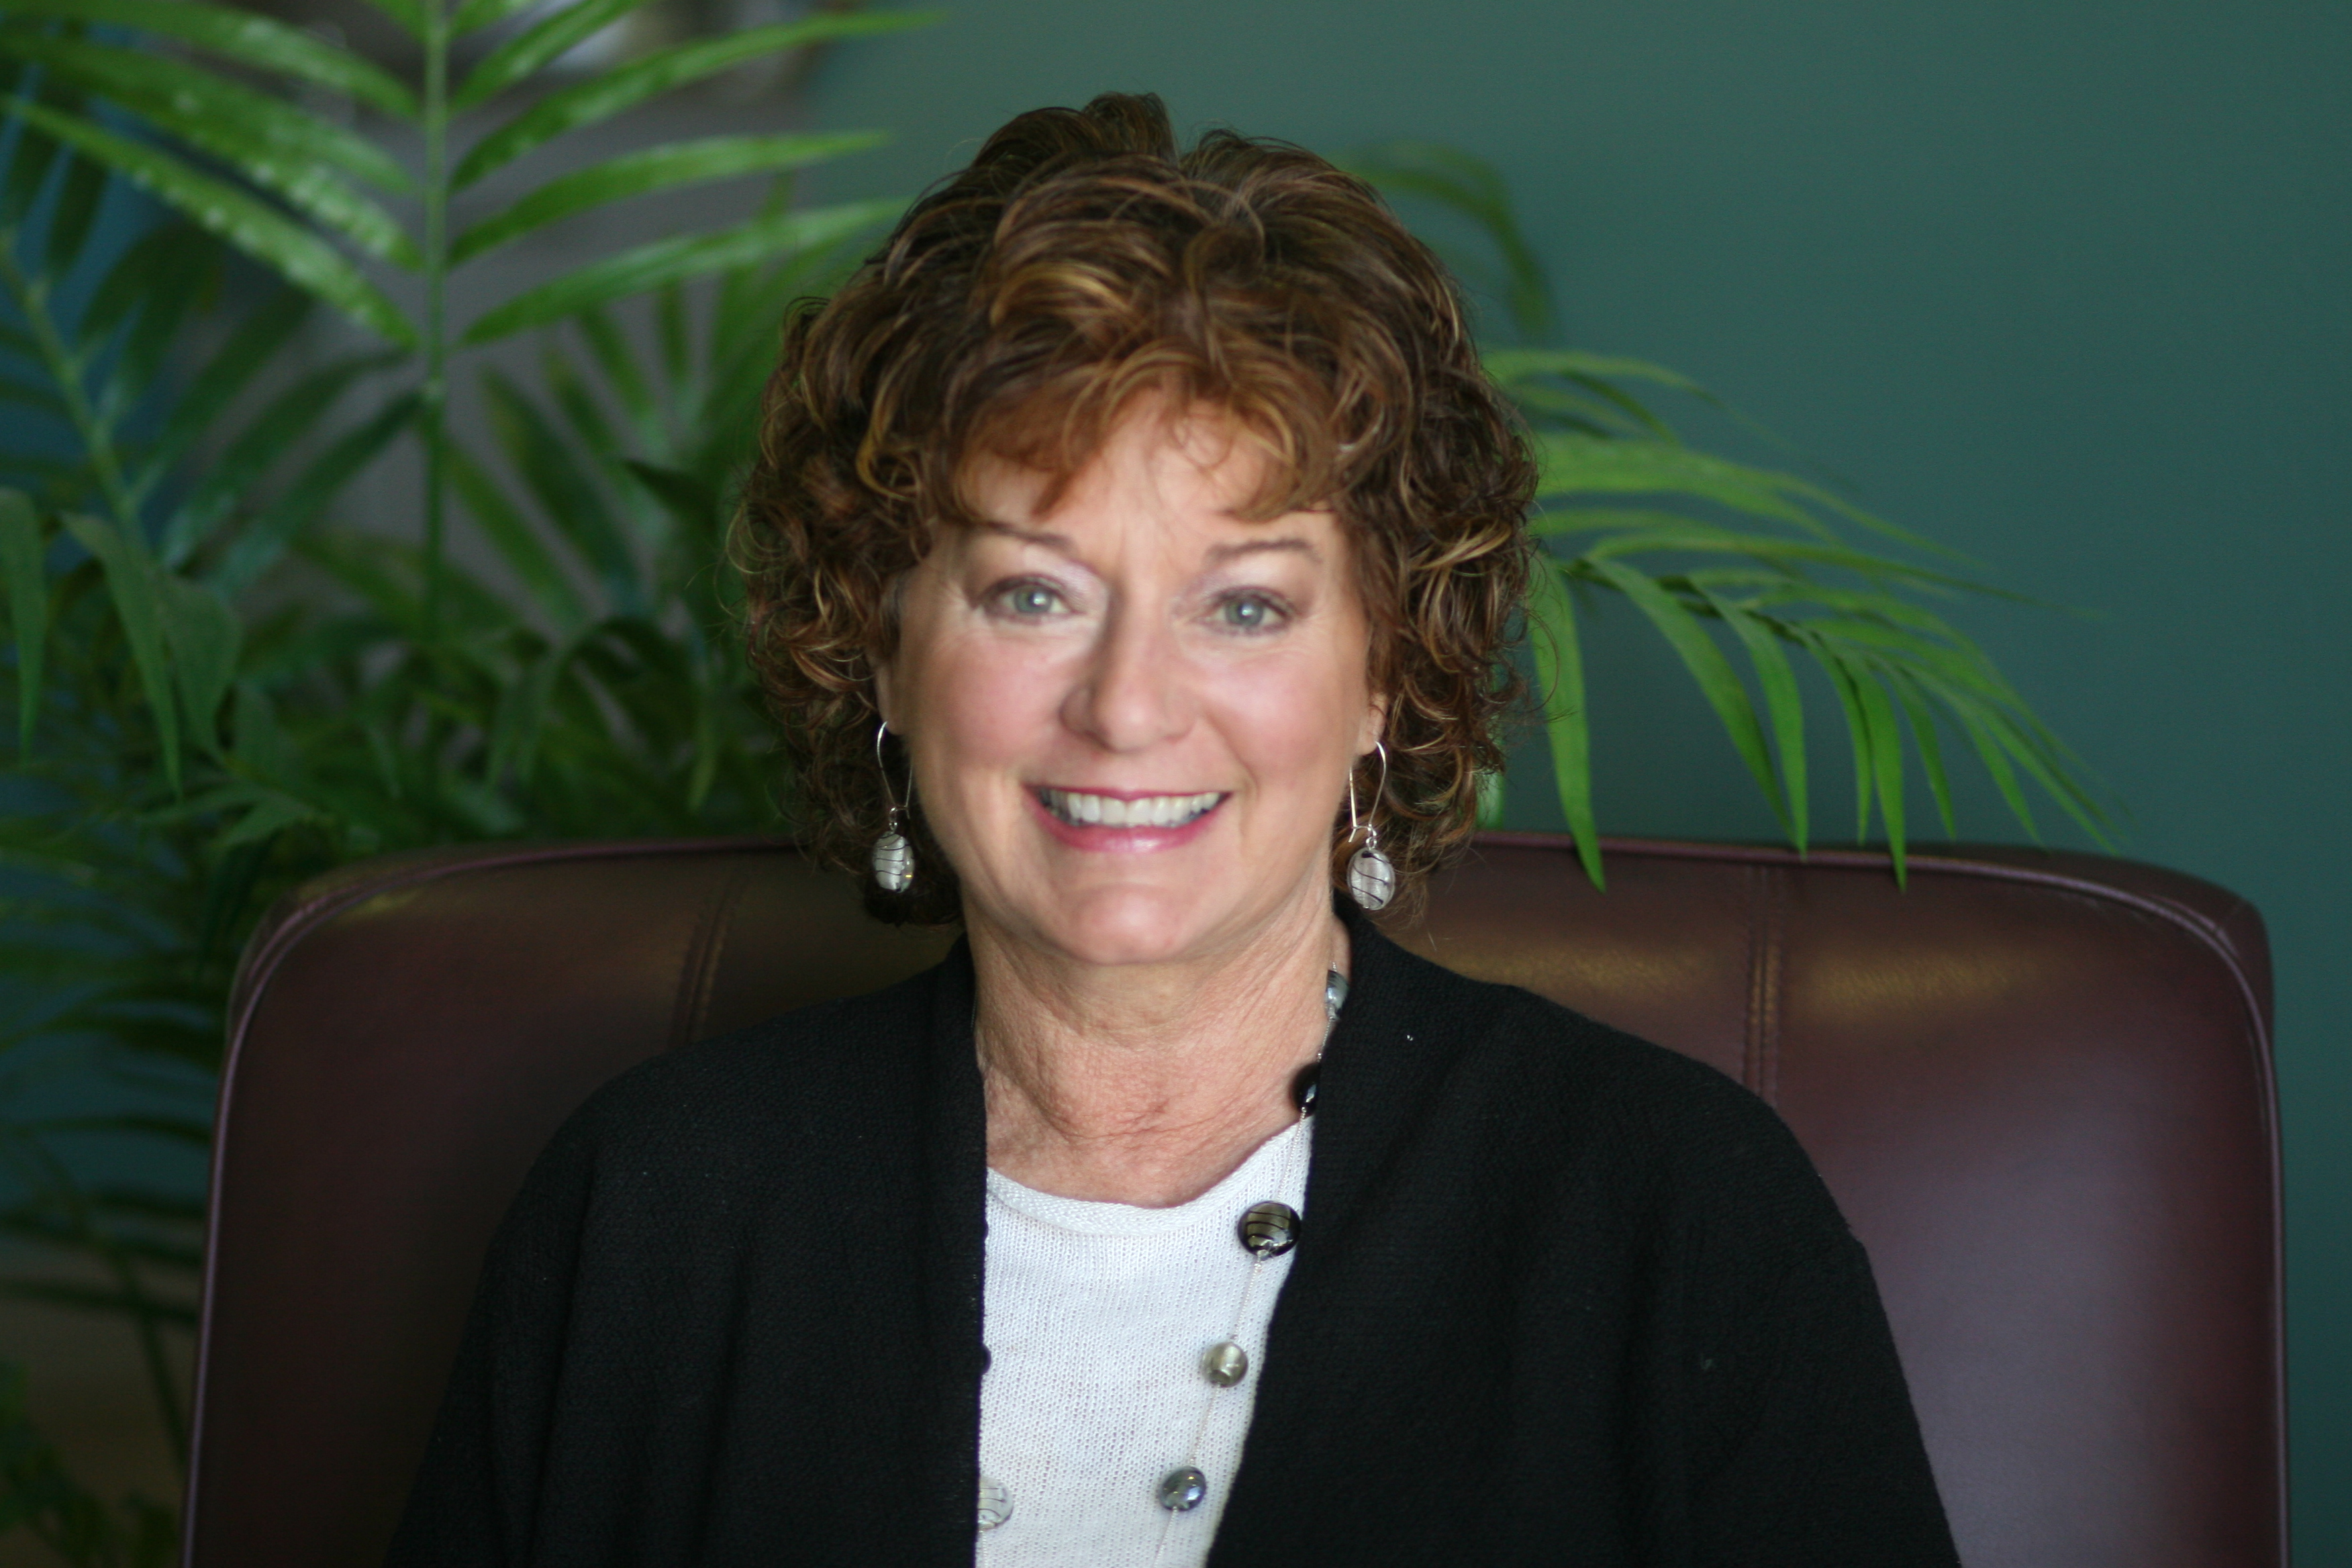 Susan Fuglie, Executive Director Hospice of the Red River Valley